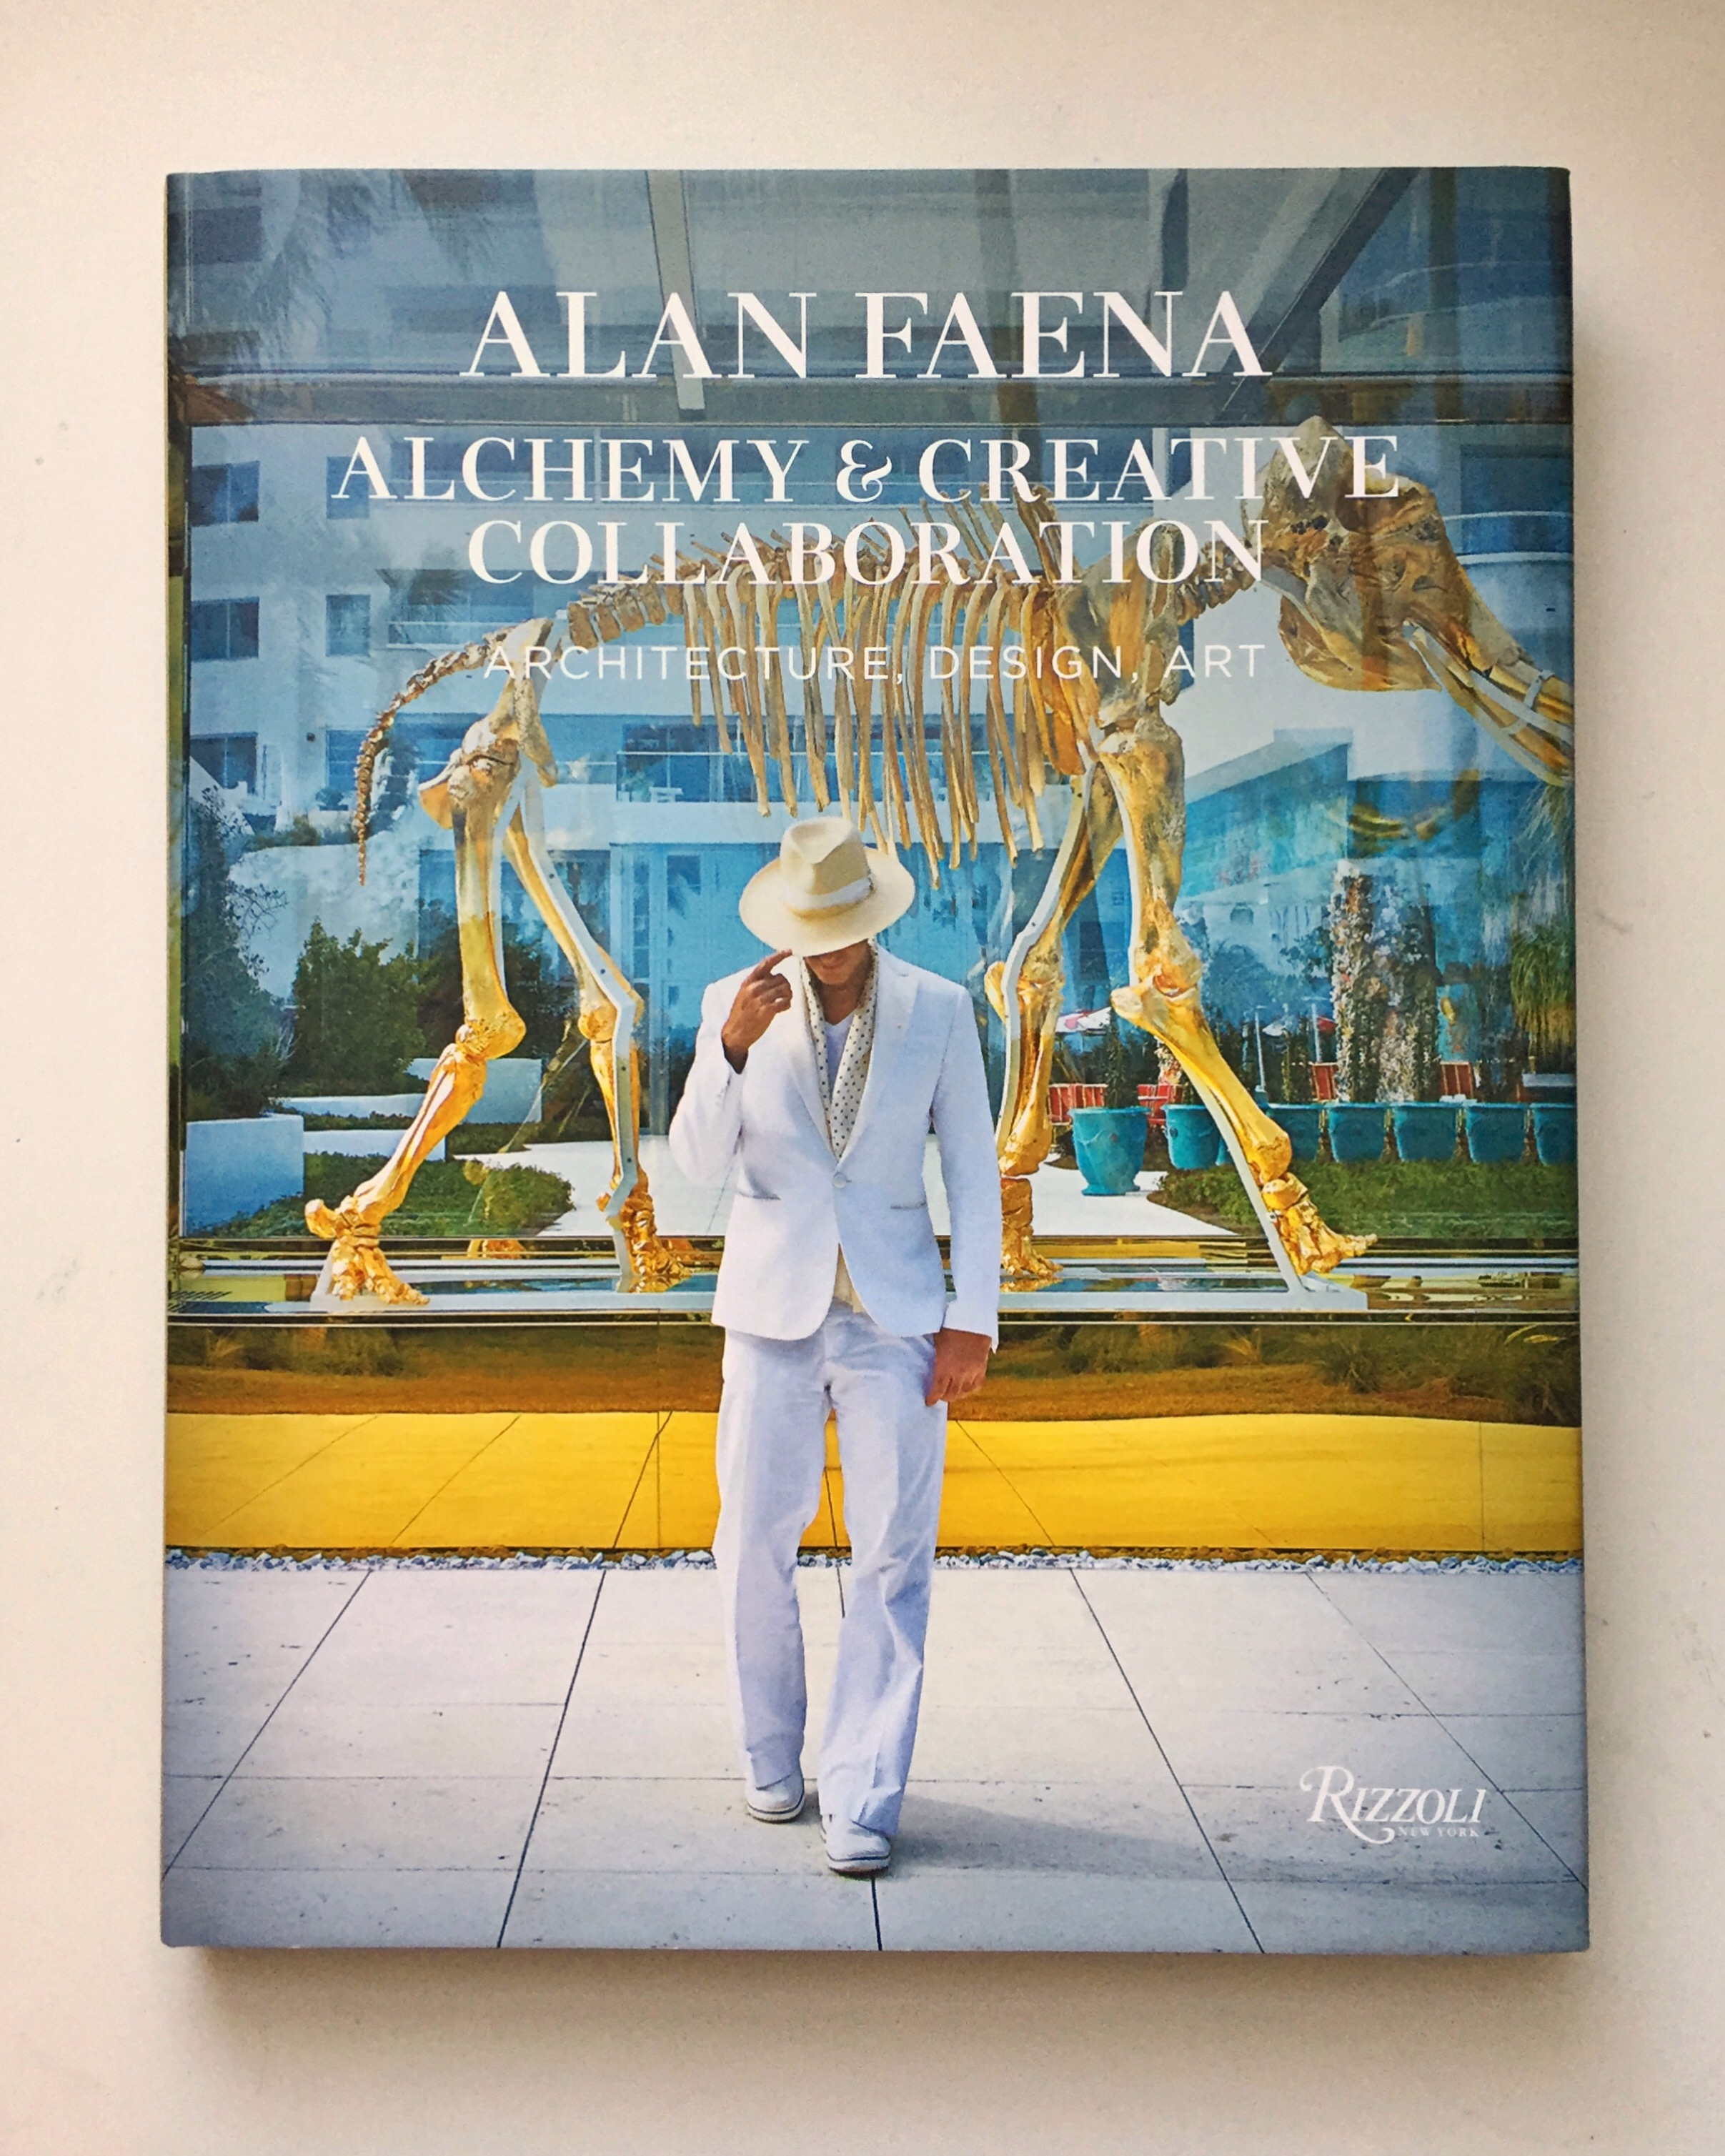 Alan Faena on Hotel Design Secrets, Working with Philippe Starck, and Staying True to His Vision (Architectural Digest)